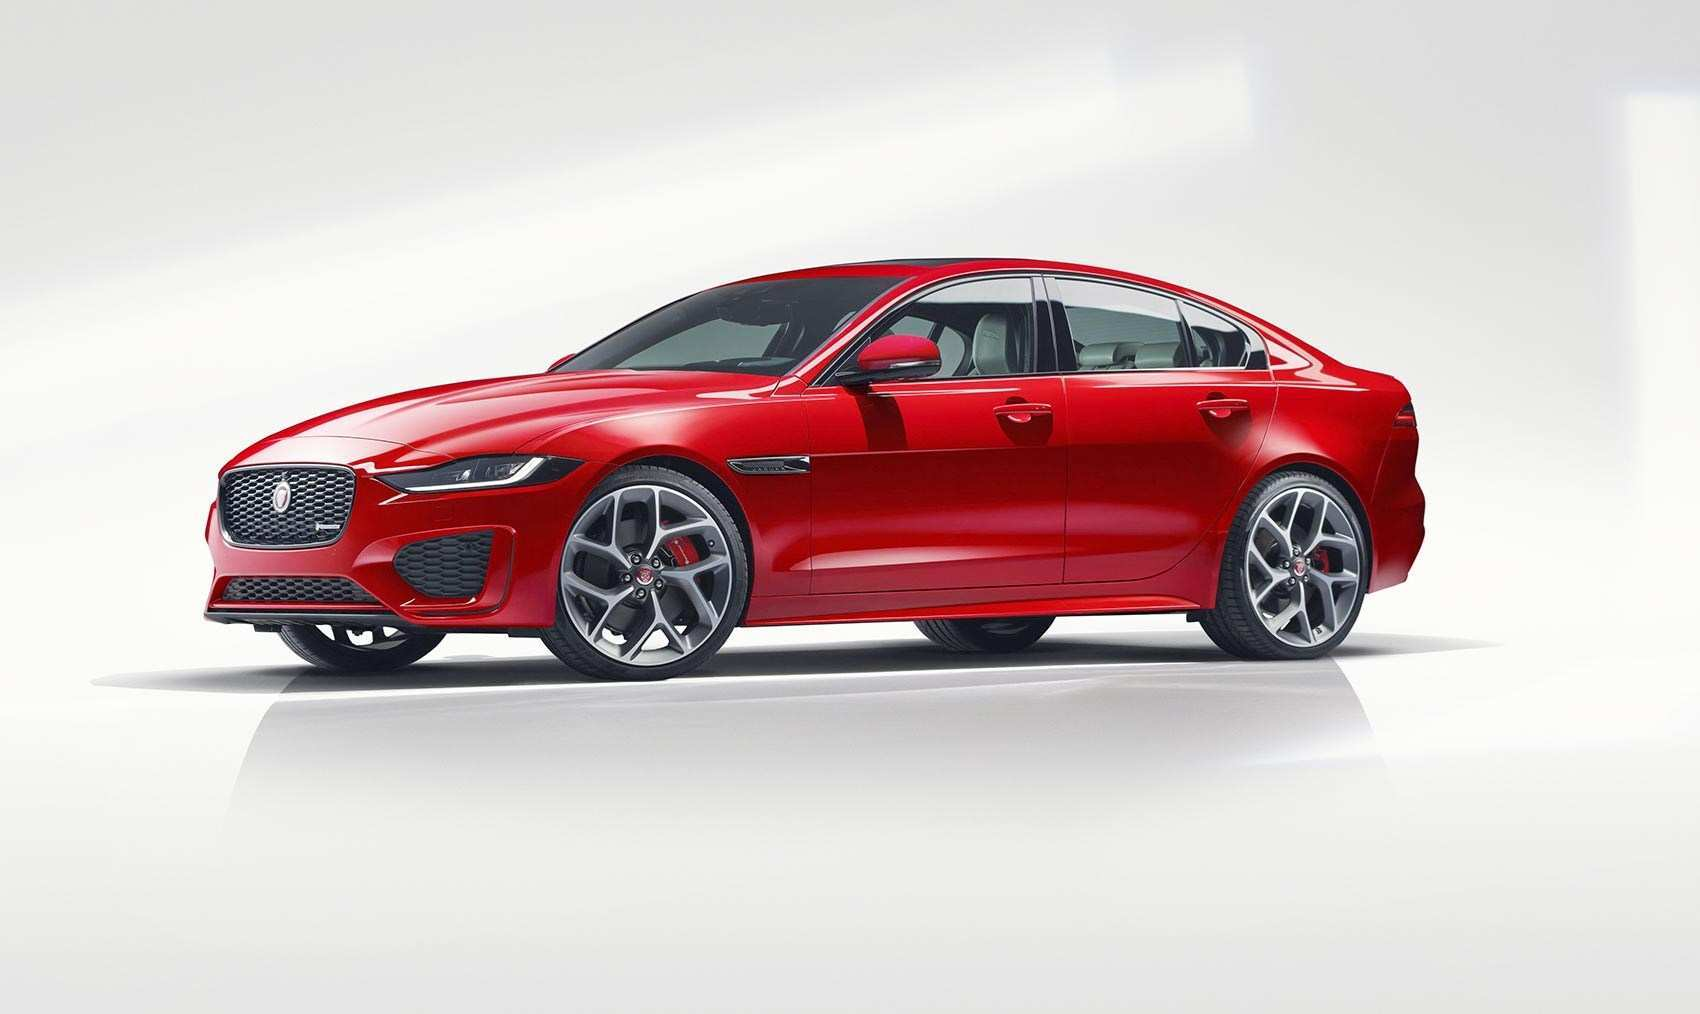 25 All New Jaguar Xe 2019 Interior